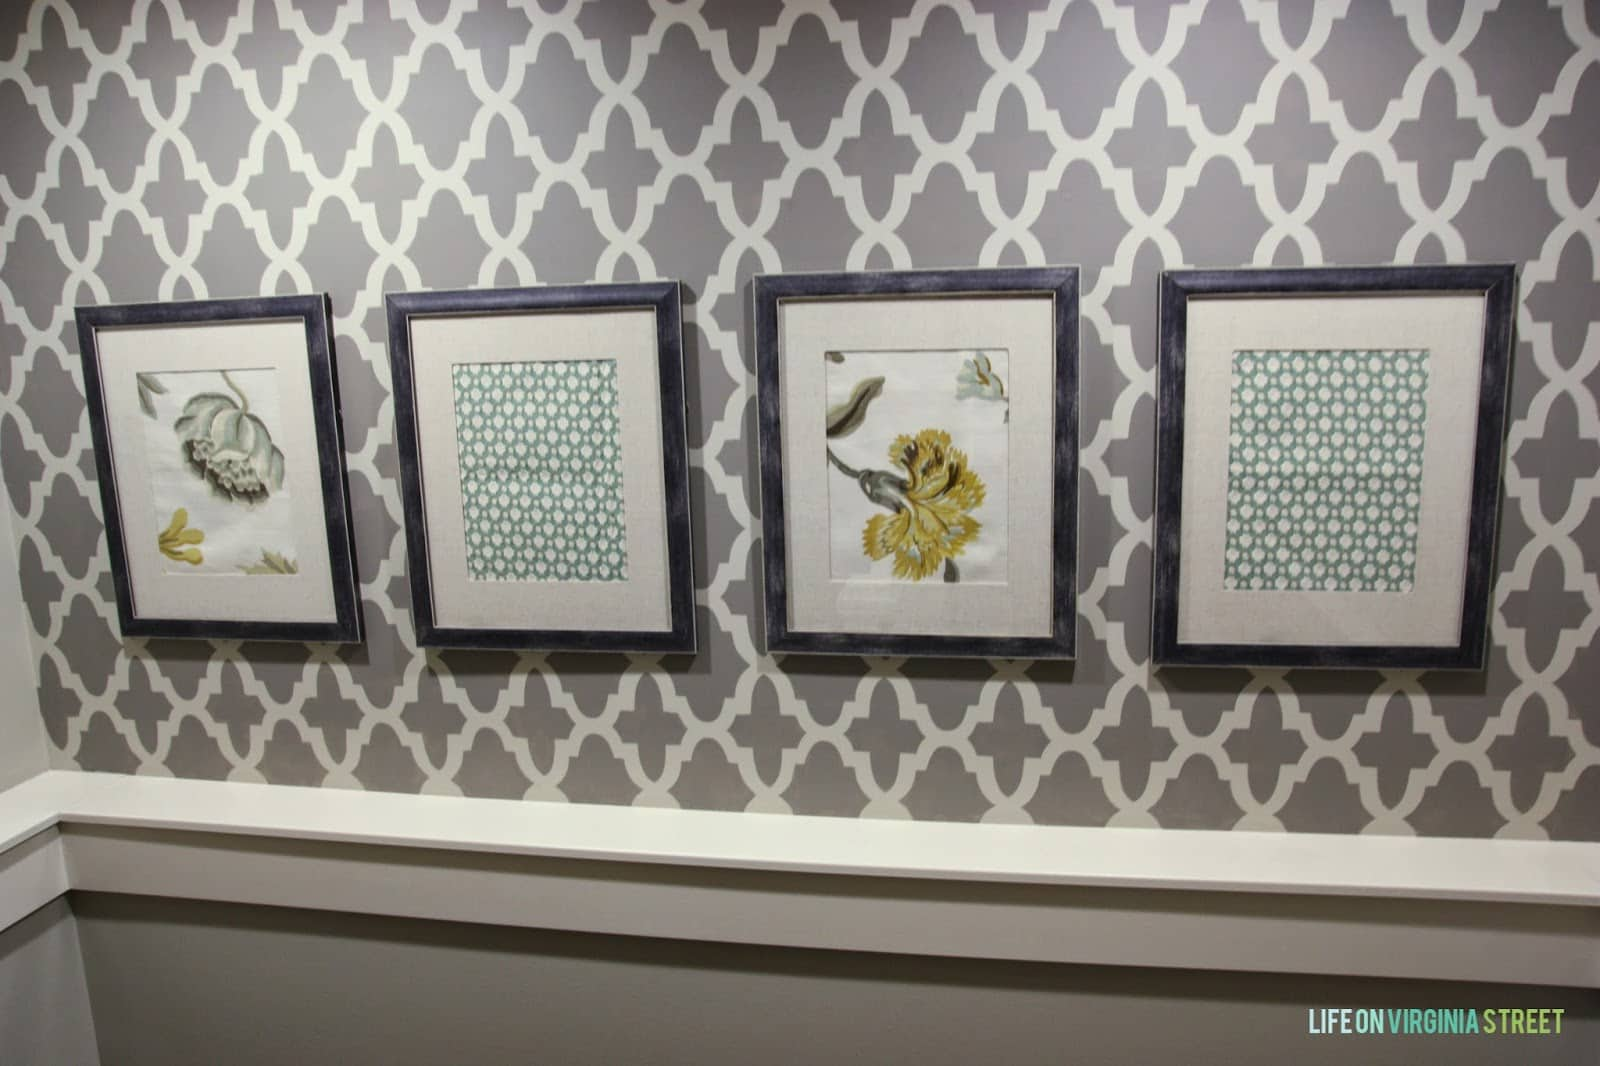 Four pictures on the stencilled wall.